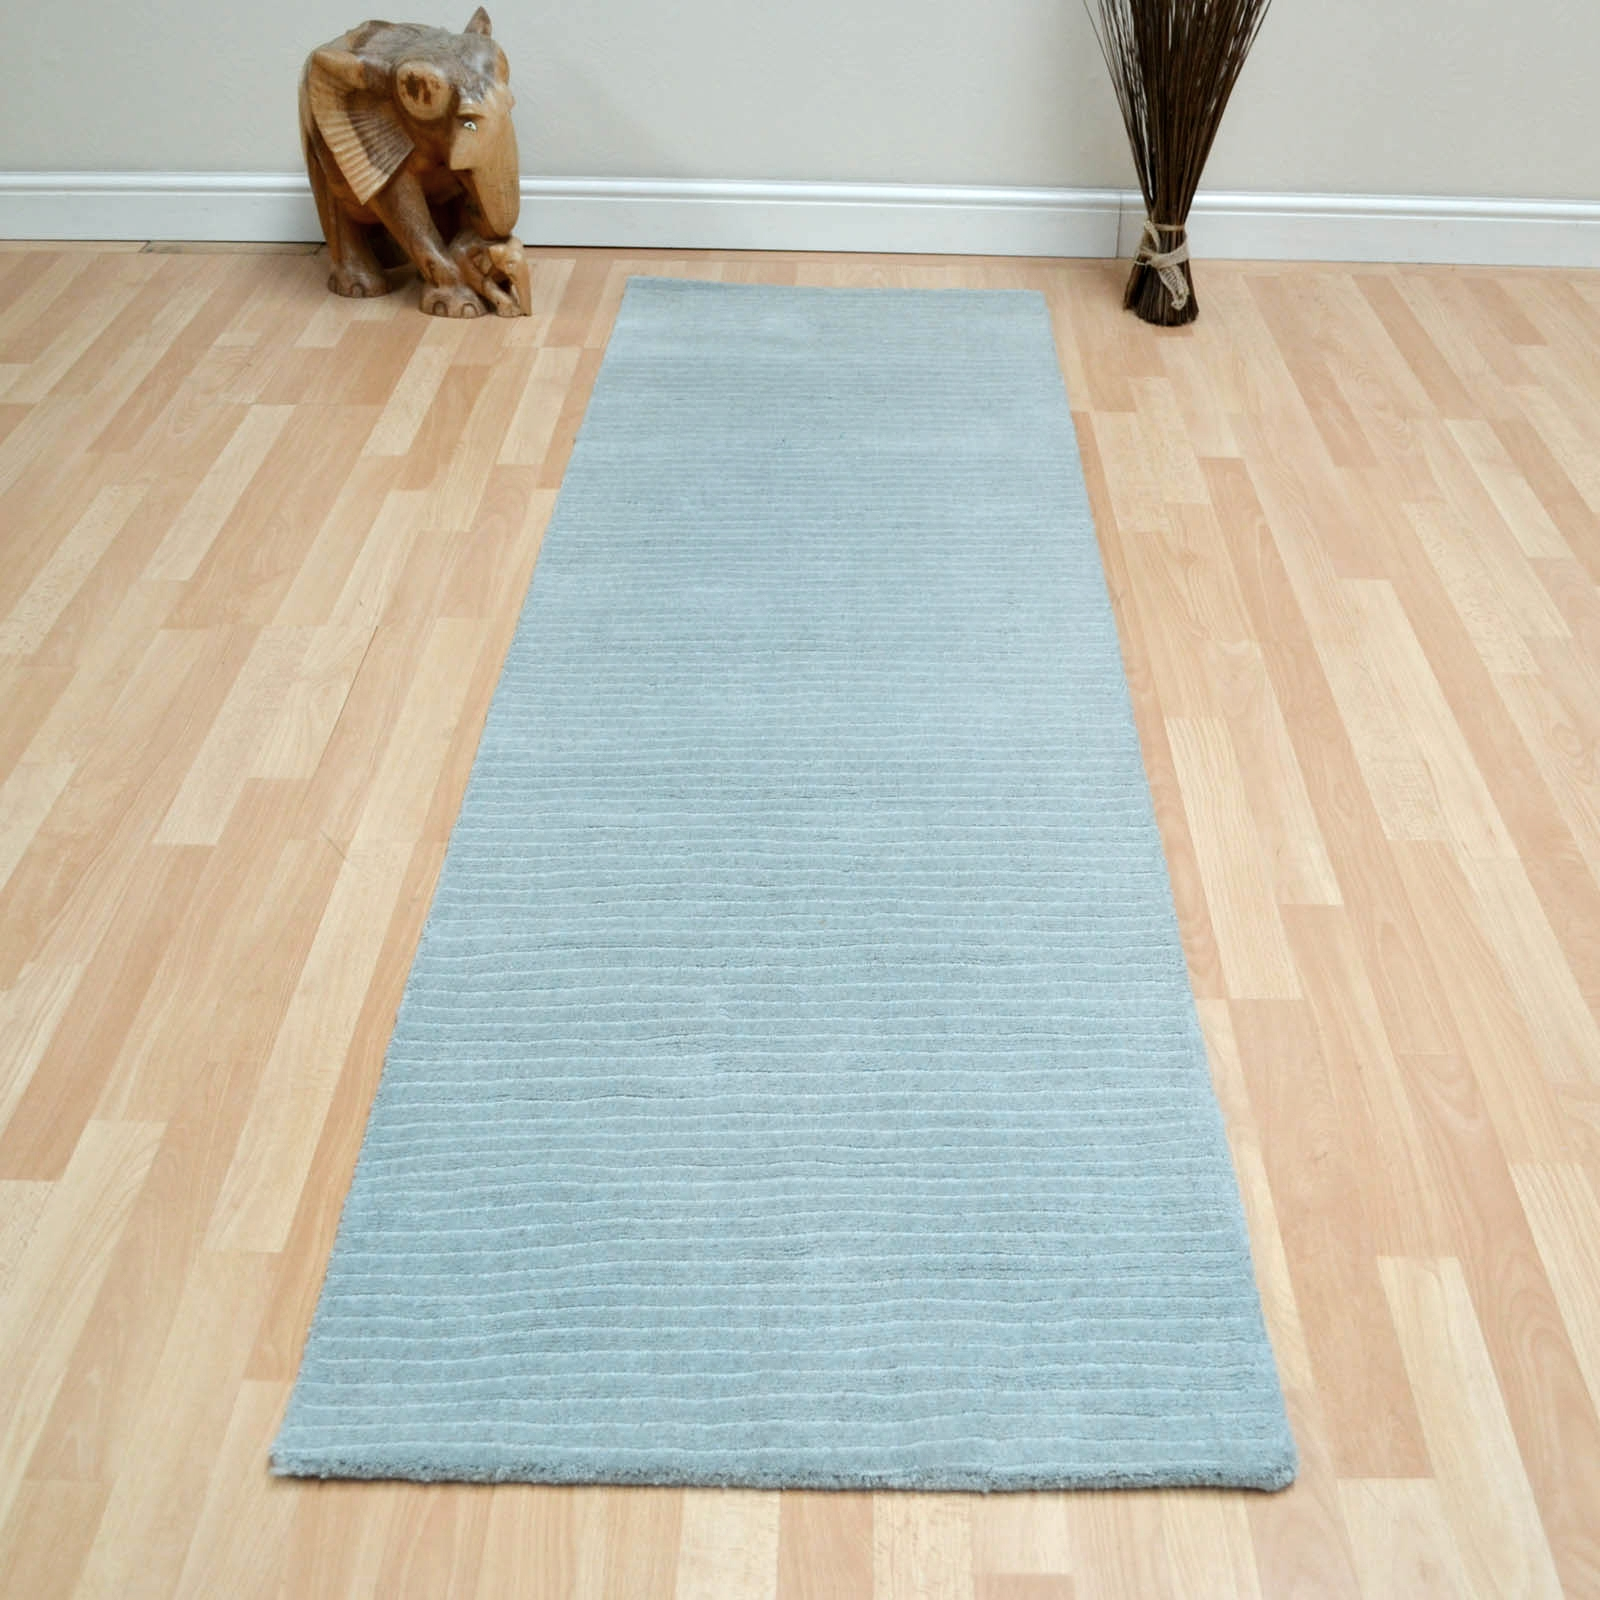 Cheap Runner Rugs Hallway Roselawnlutheran Pertaining To Wide Hallway Runners (View 7 of 20)